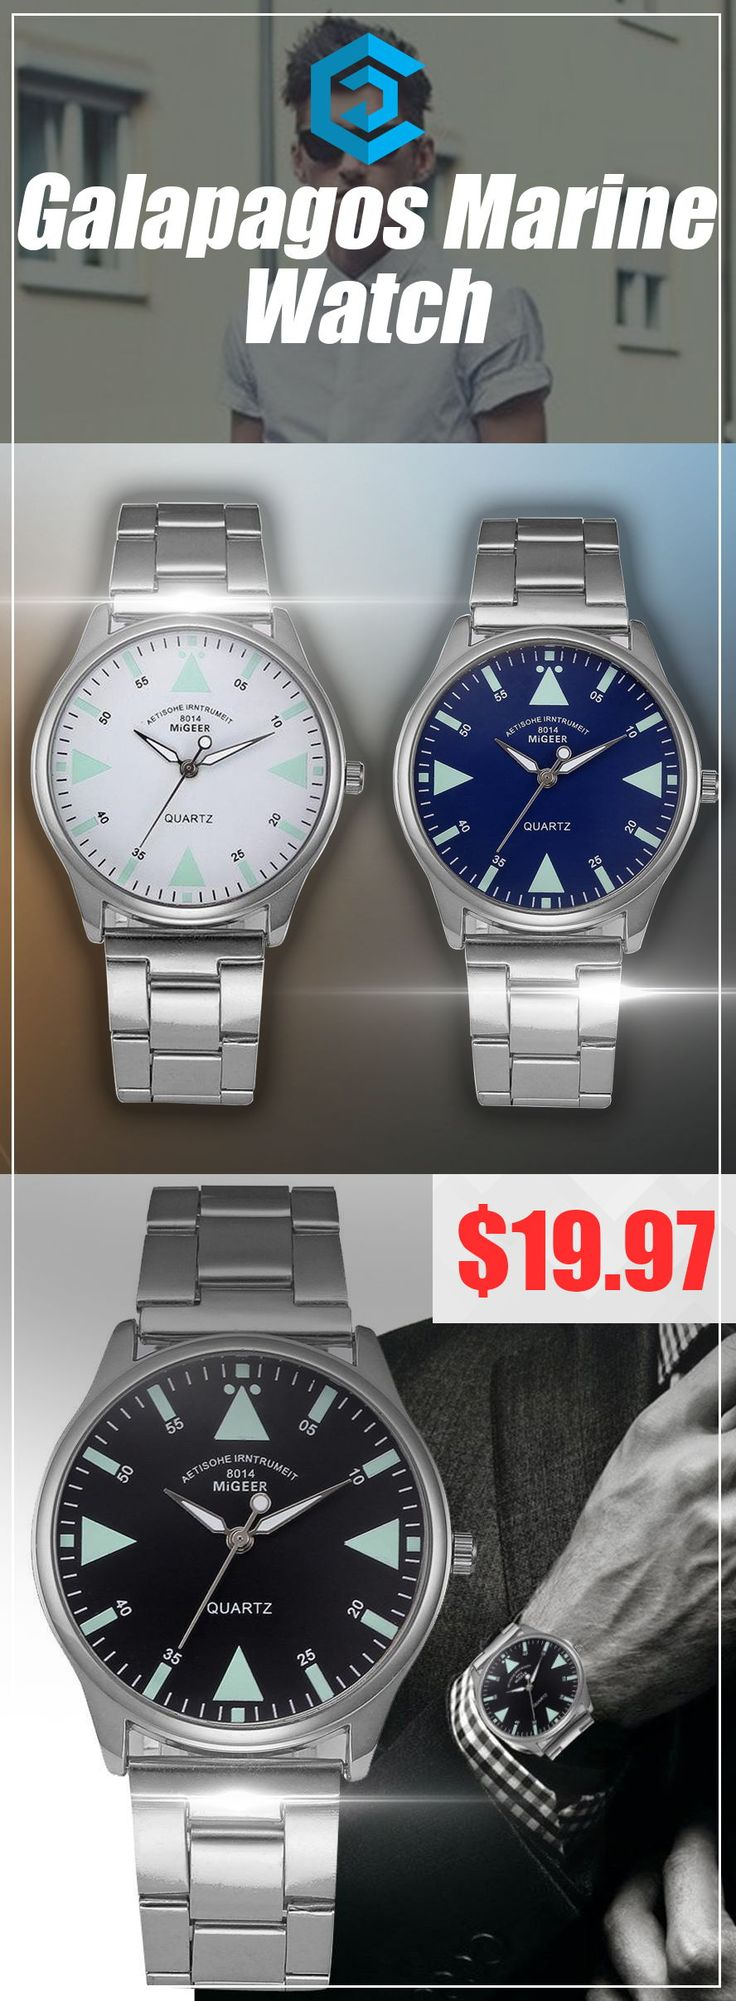 Galapagos Marine Watch |affordable| |luxury| |mens| |simple| |watches for men| |unique| |design| #watches #luxury #fashion #unique